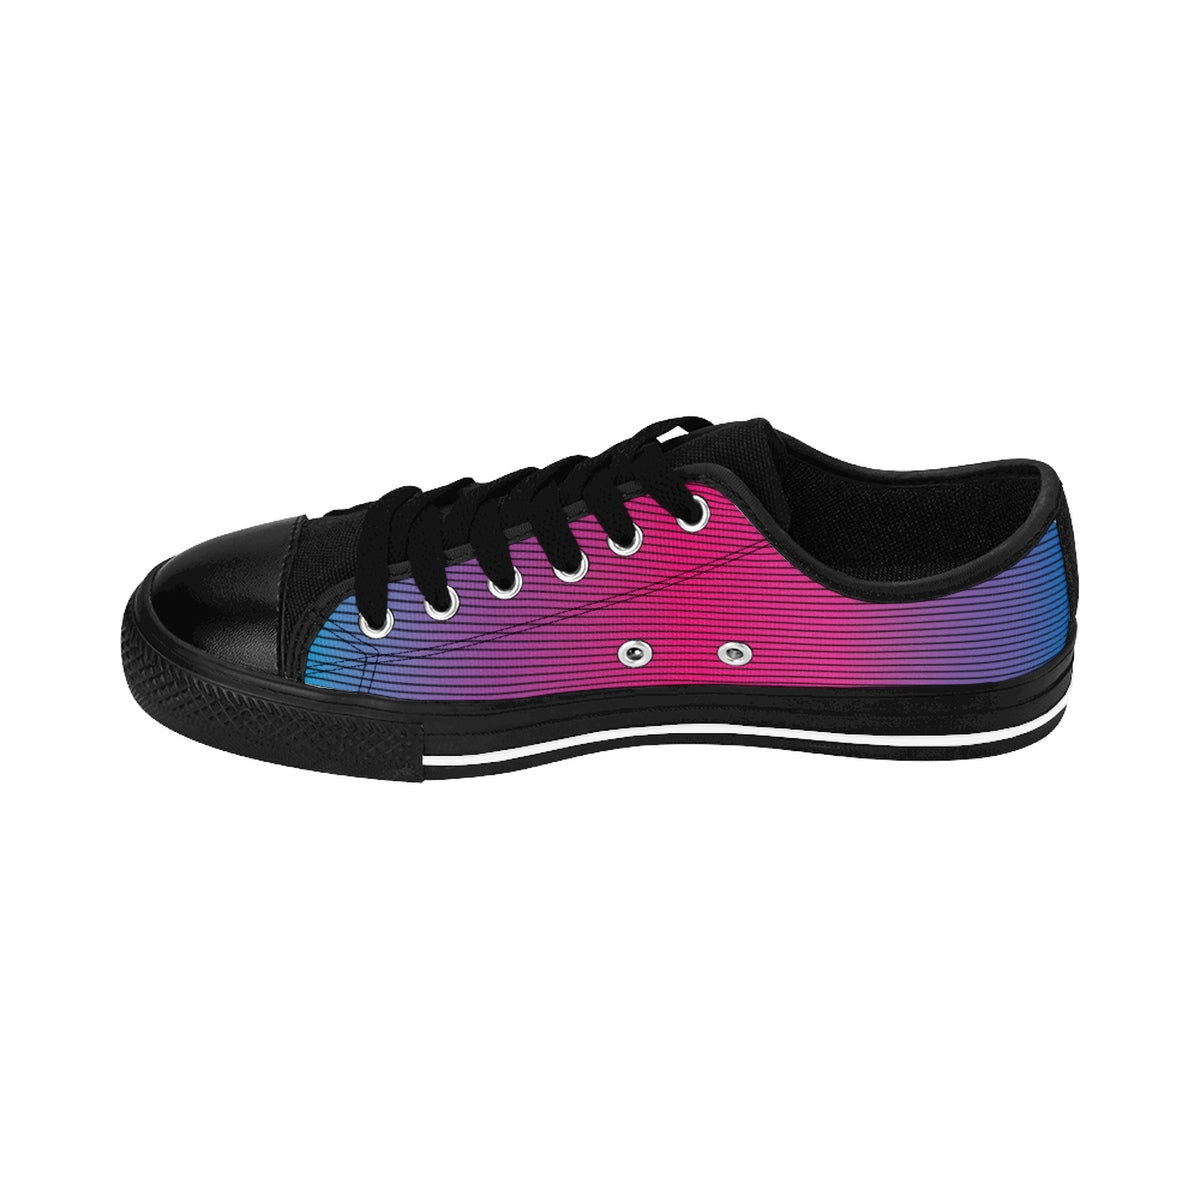 DiamondzOC Blue-Pink-Purple Toned Designer Shoes D.O.C. Men's Sneakers